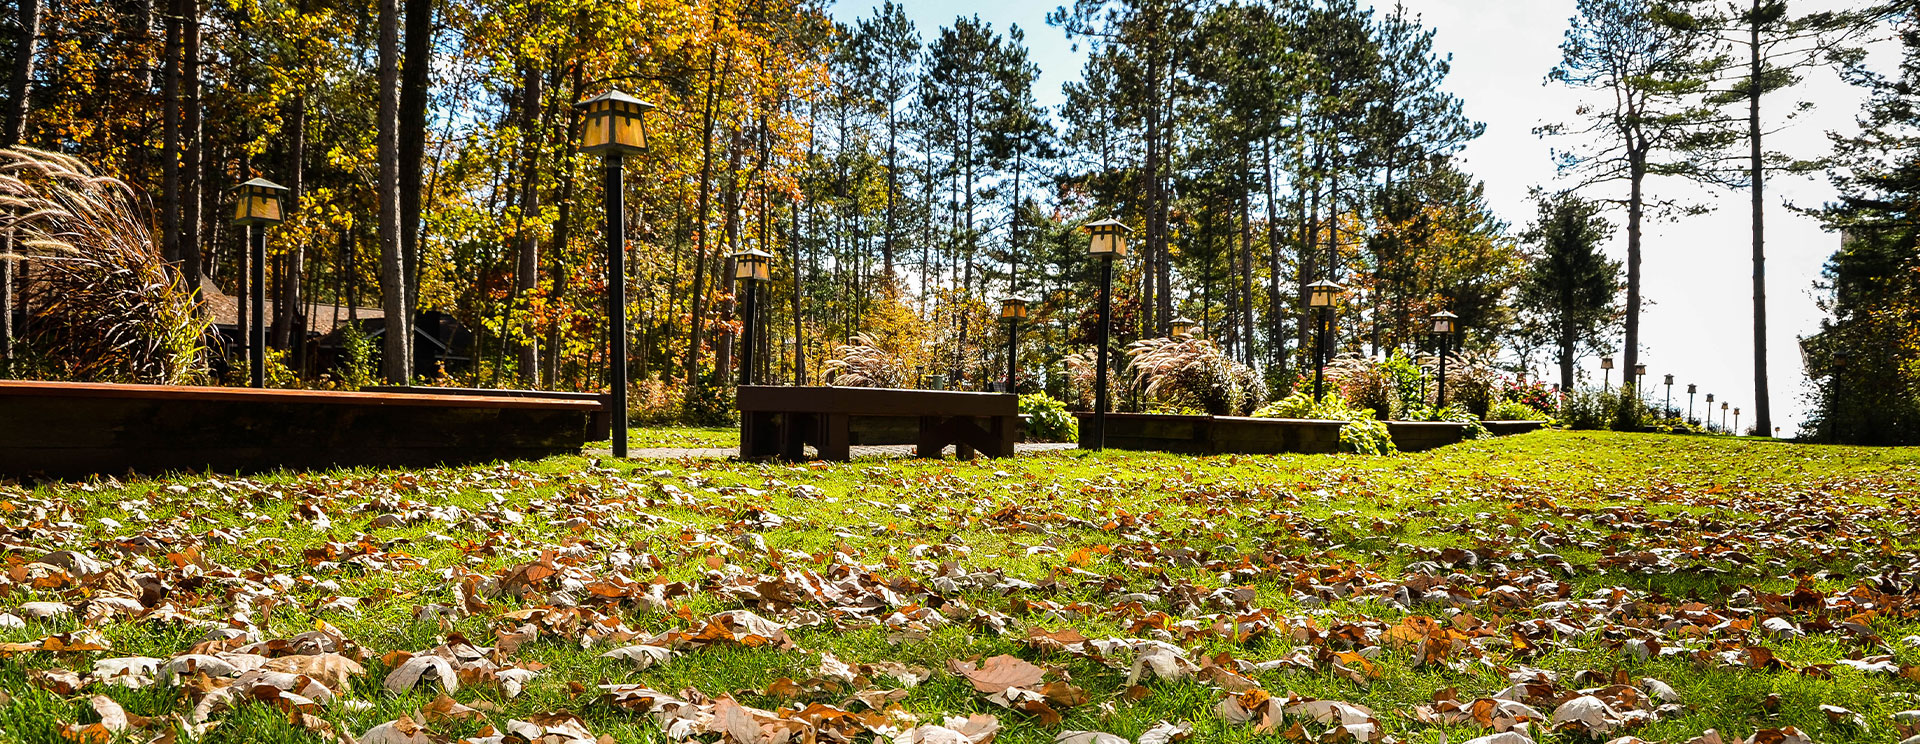 20 Fall Things to do in Brainerd Lakes Area